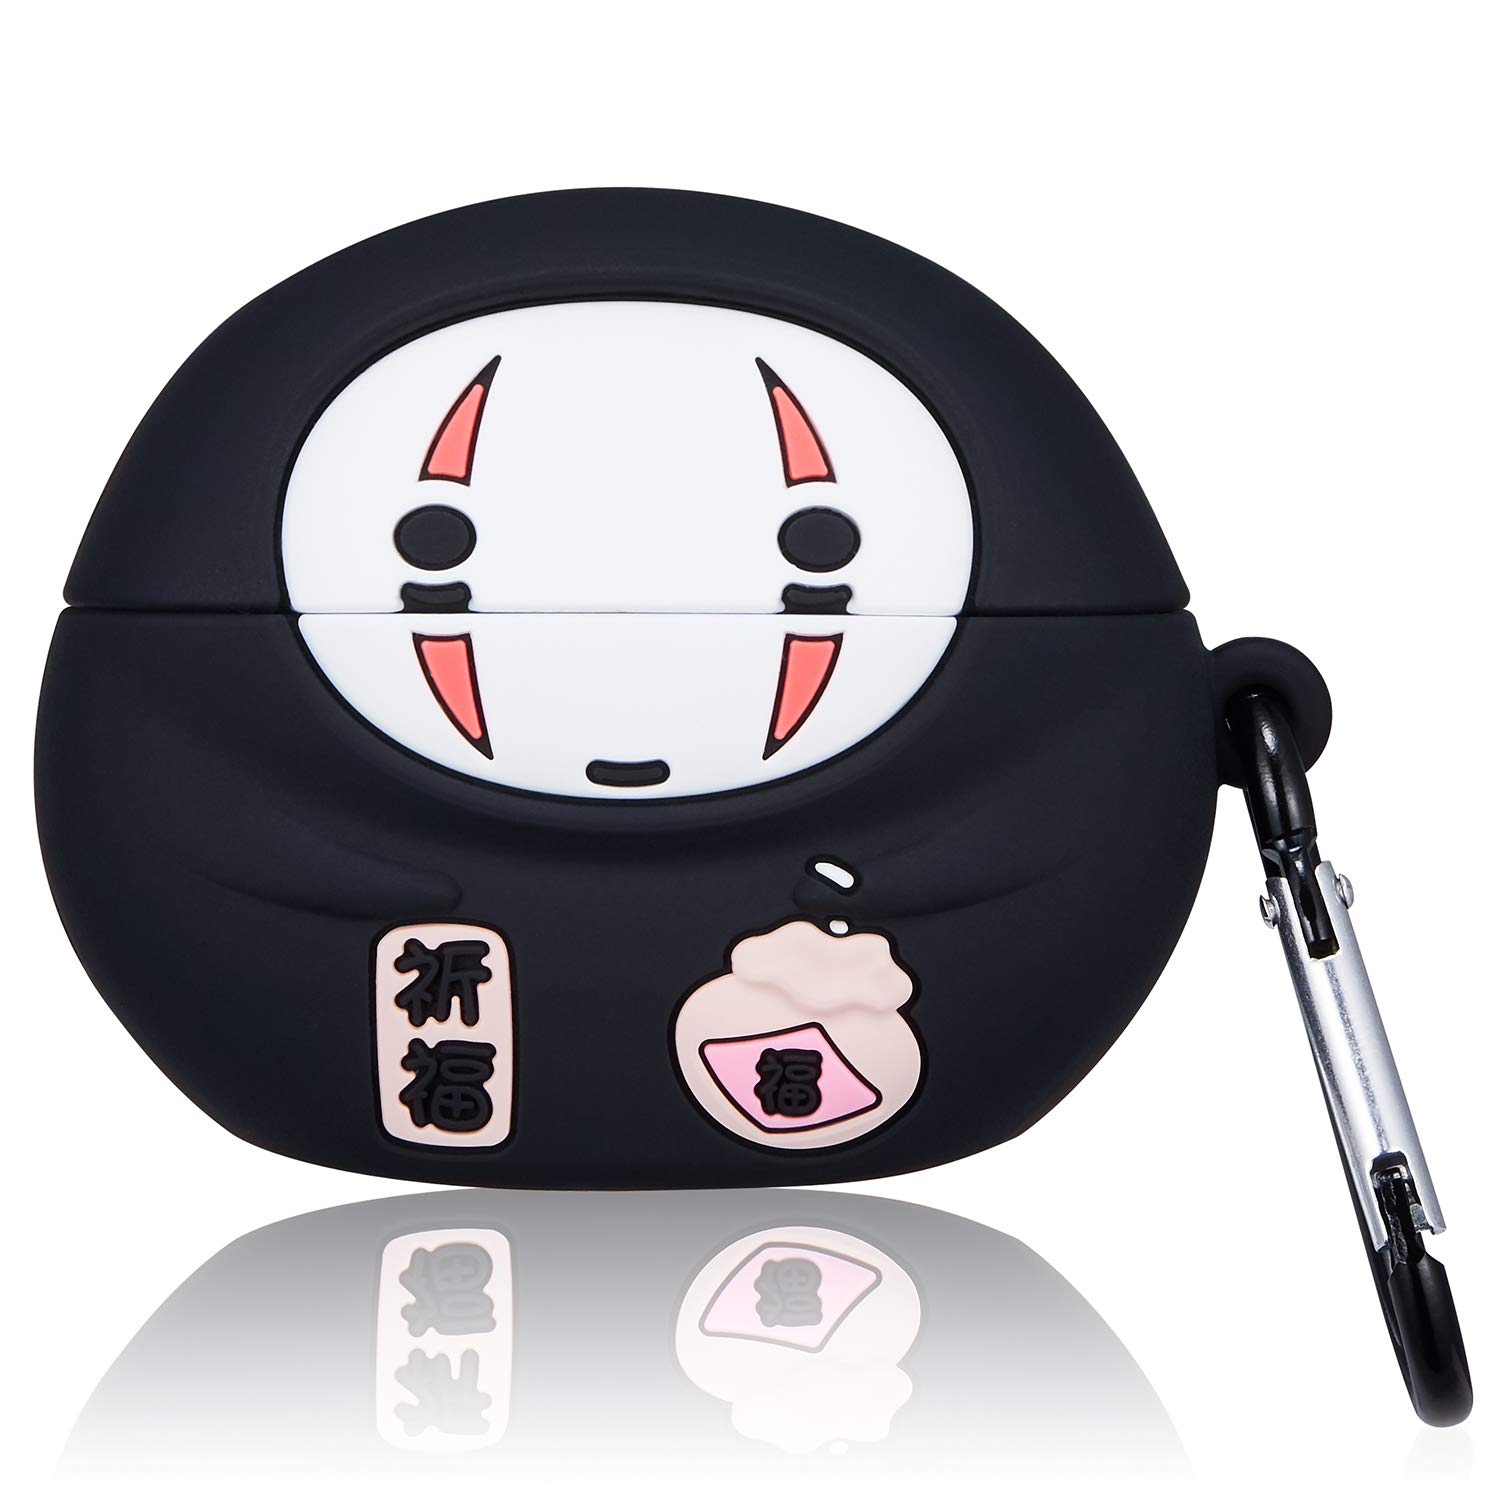 Gift-Hero Q Faceless Case for Airpods Pro/for Airpods 3, Cartoon Cute Funny Design for Girls Boys Kids, Unique Carabiner Protective Fun Fashion Unique Character Skin Soft Silicone Cover for Air pods 3